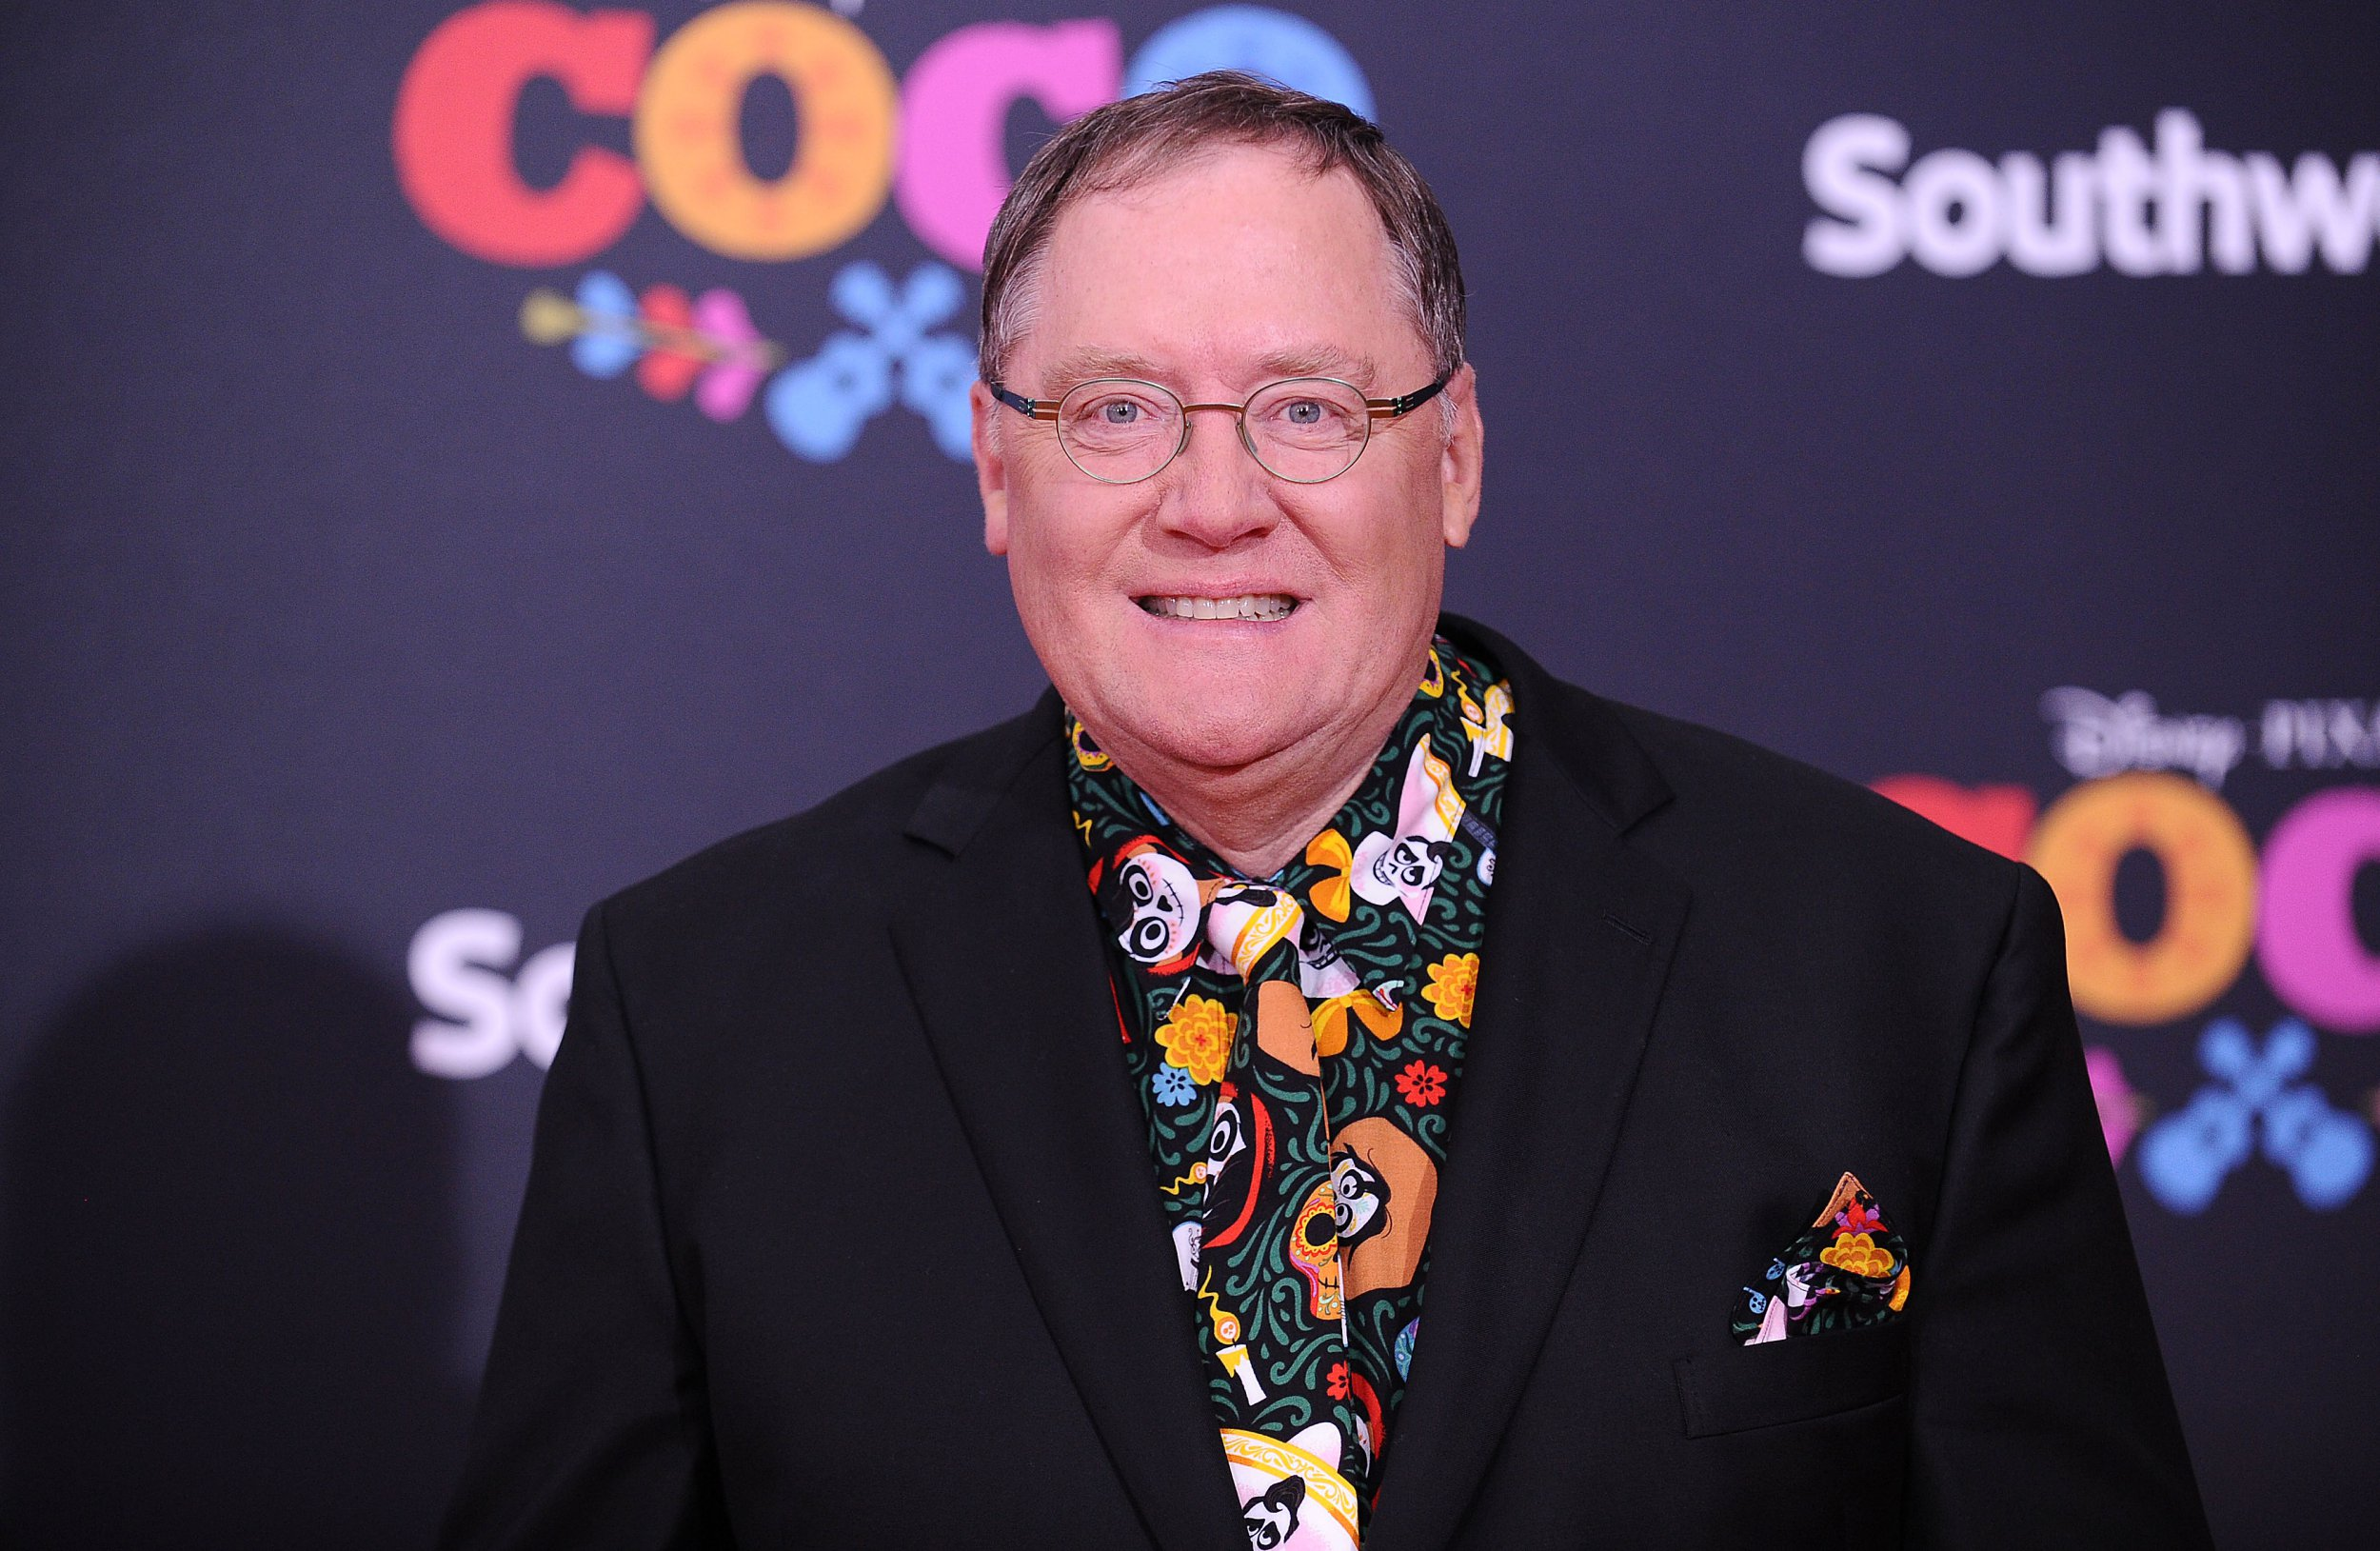 Pixar's John Lasseter to leave Disney over sexual harassment scandal